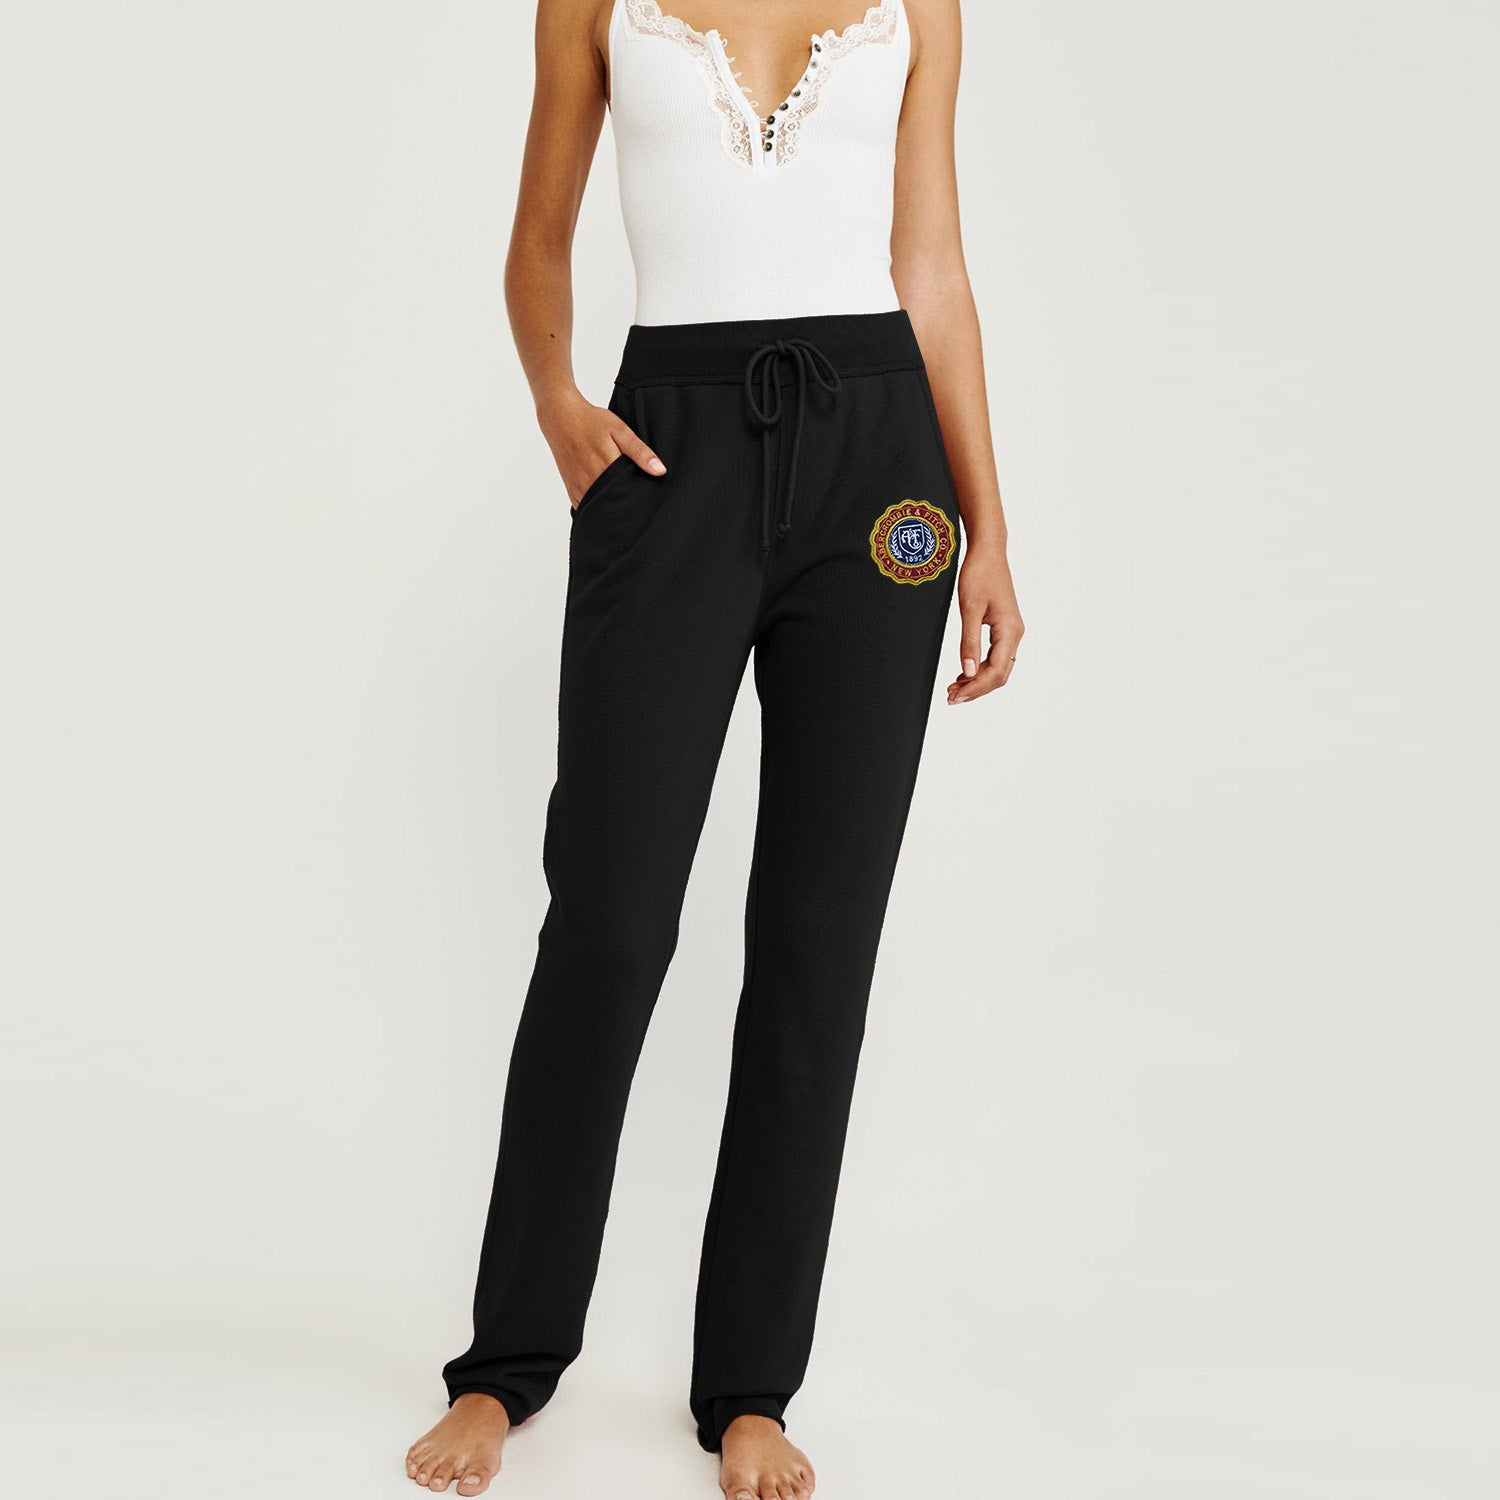 A&F Fleece Yellow Maroon & Navy Embroidery Straight Fit Jogger Trouser For Ladies-Black-BE9732